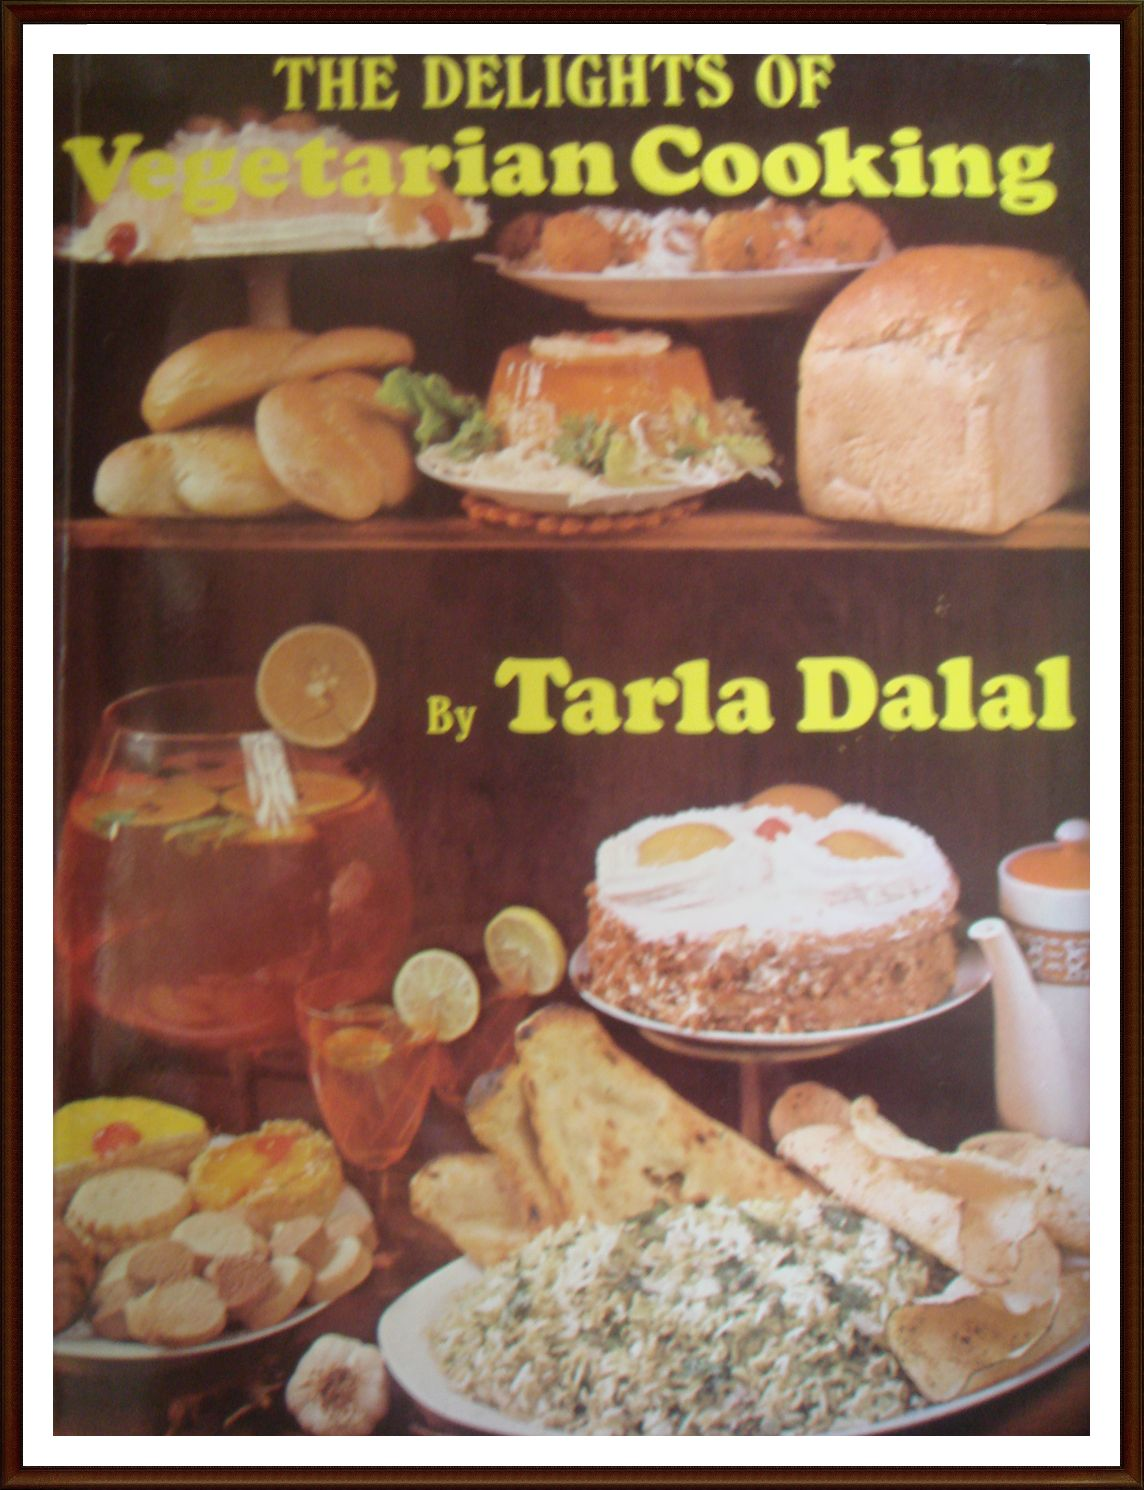 The delights of vegetarian cooking book review seduce your the delights of vegetarian cooking book review forumfinder Gallery